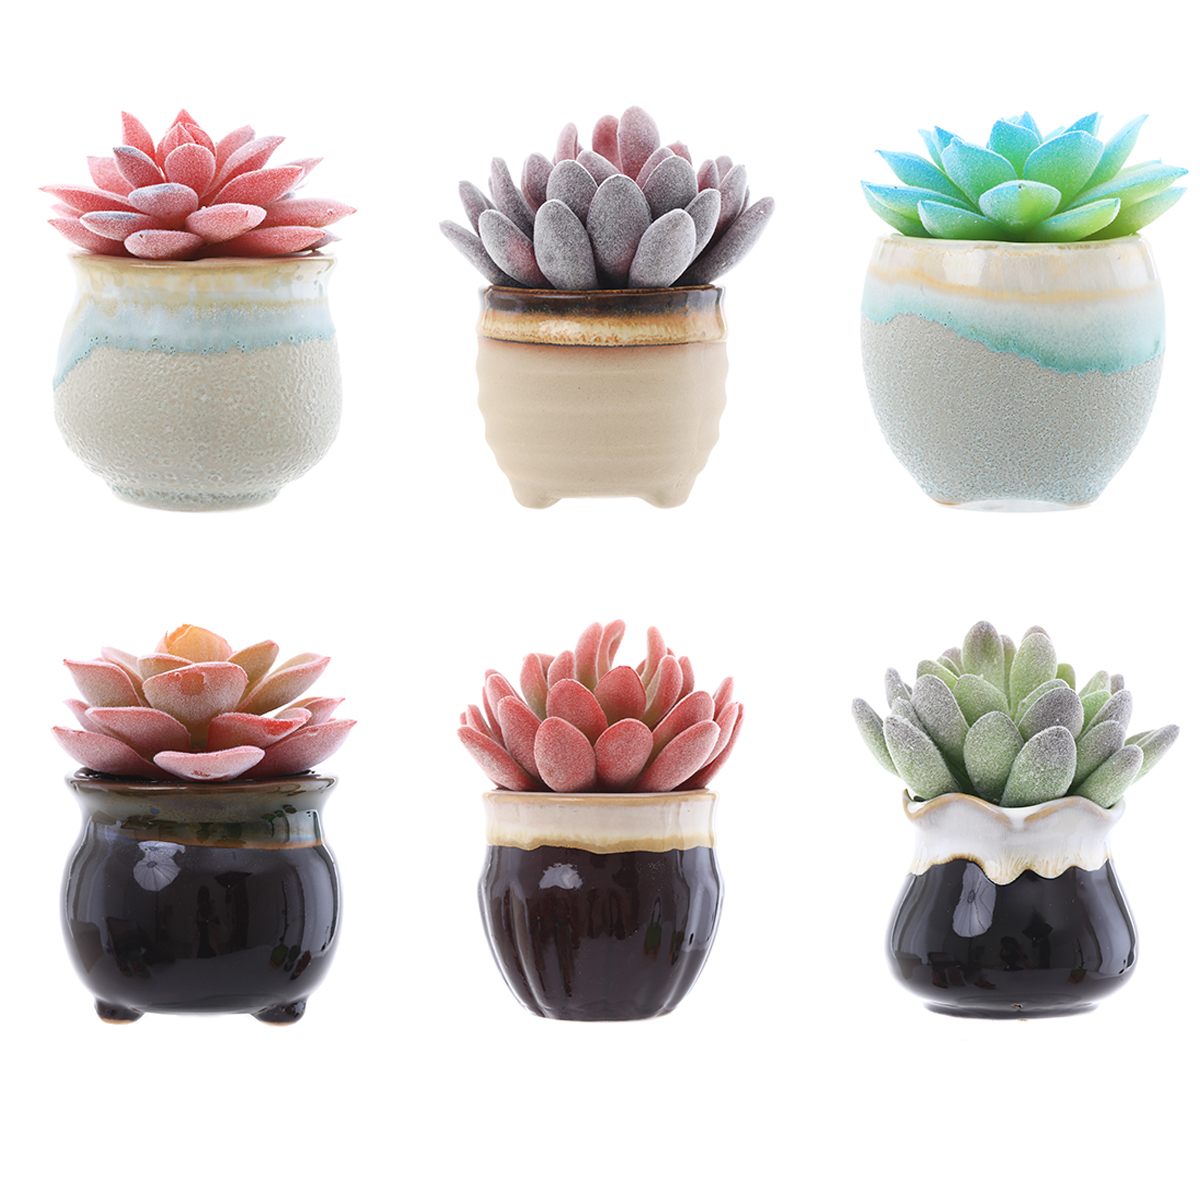 6 Styles Succulent Pots With Drainage 2 5 Inches 6 Color Pot Trays 4 Mini Plant Tools For Small Succulents Cactus Small Plant Flower Walmart Com Walmart Com